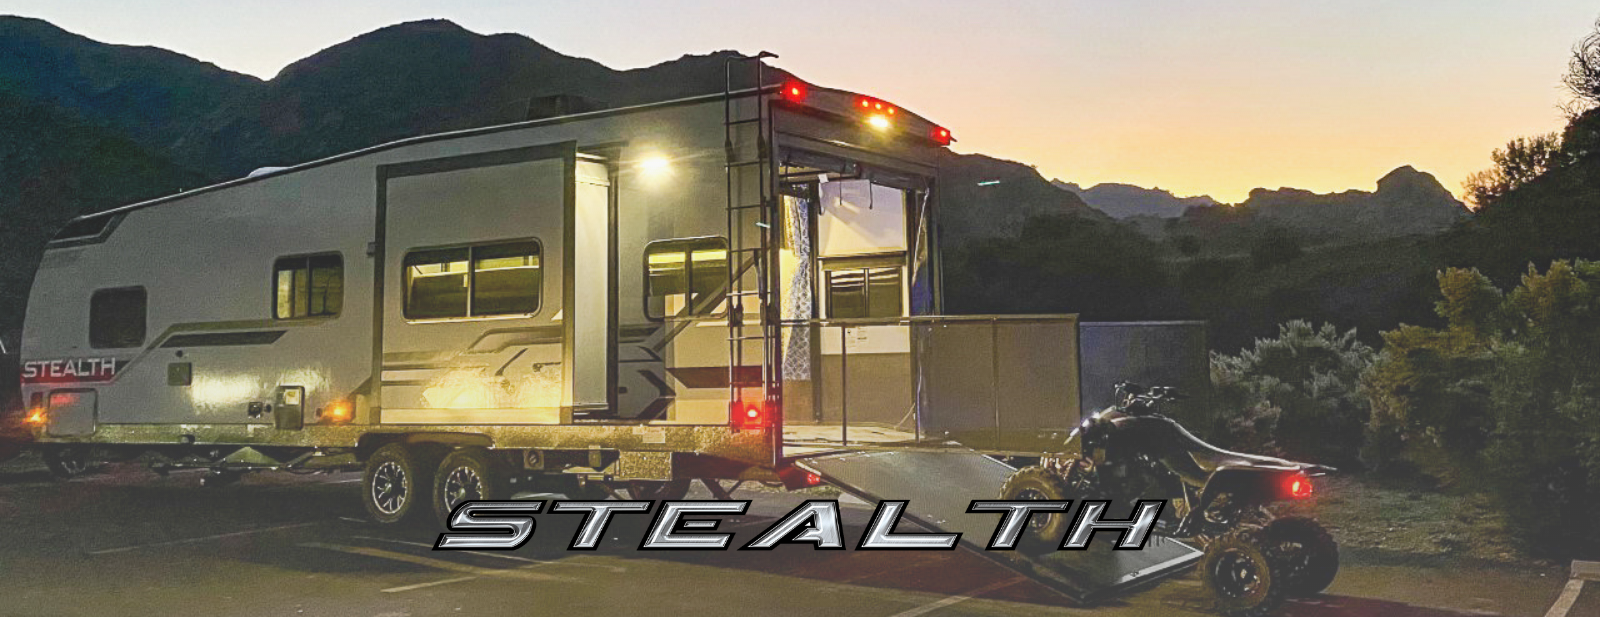 Stealth Travel Trailer And Fifth Wheel Toy Haulers